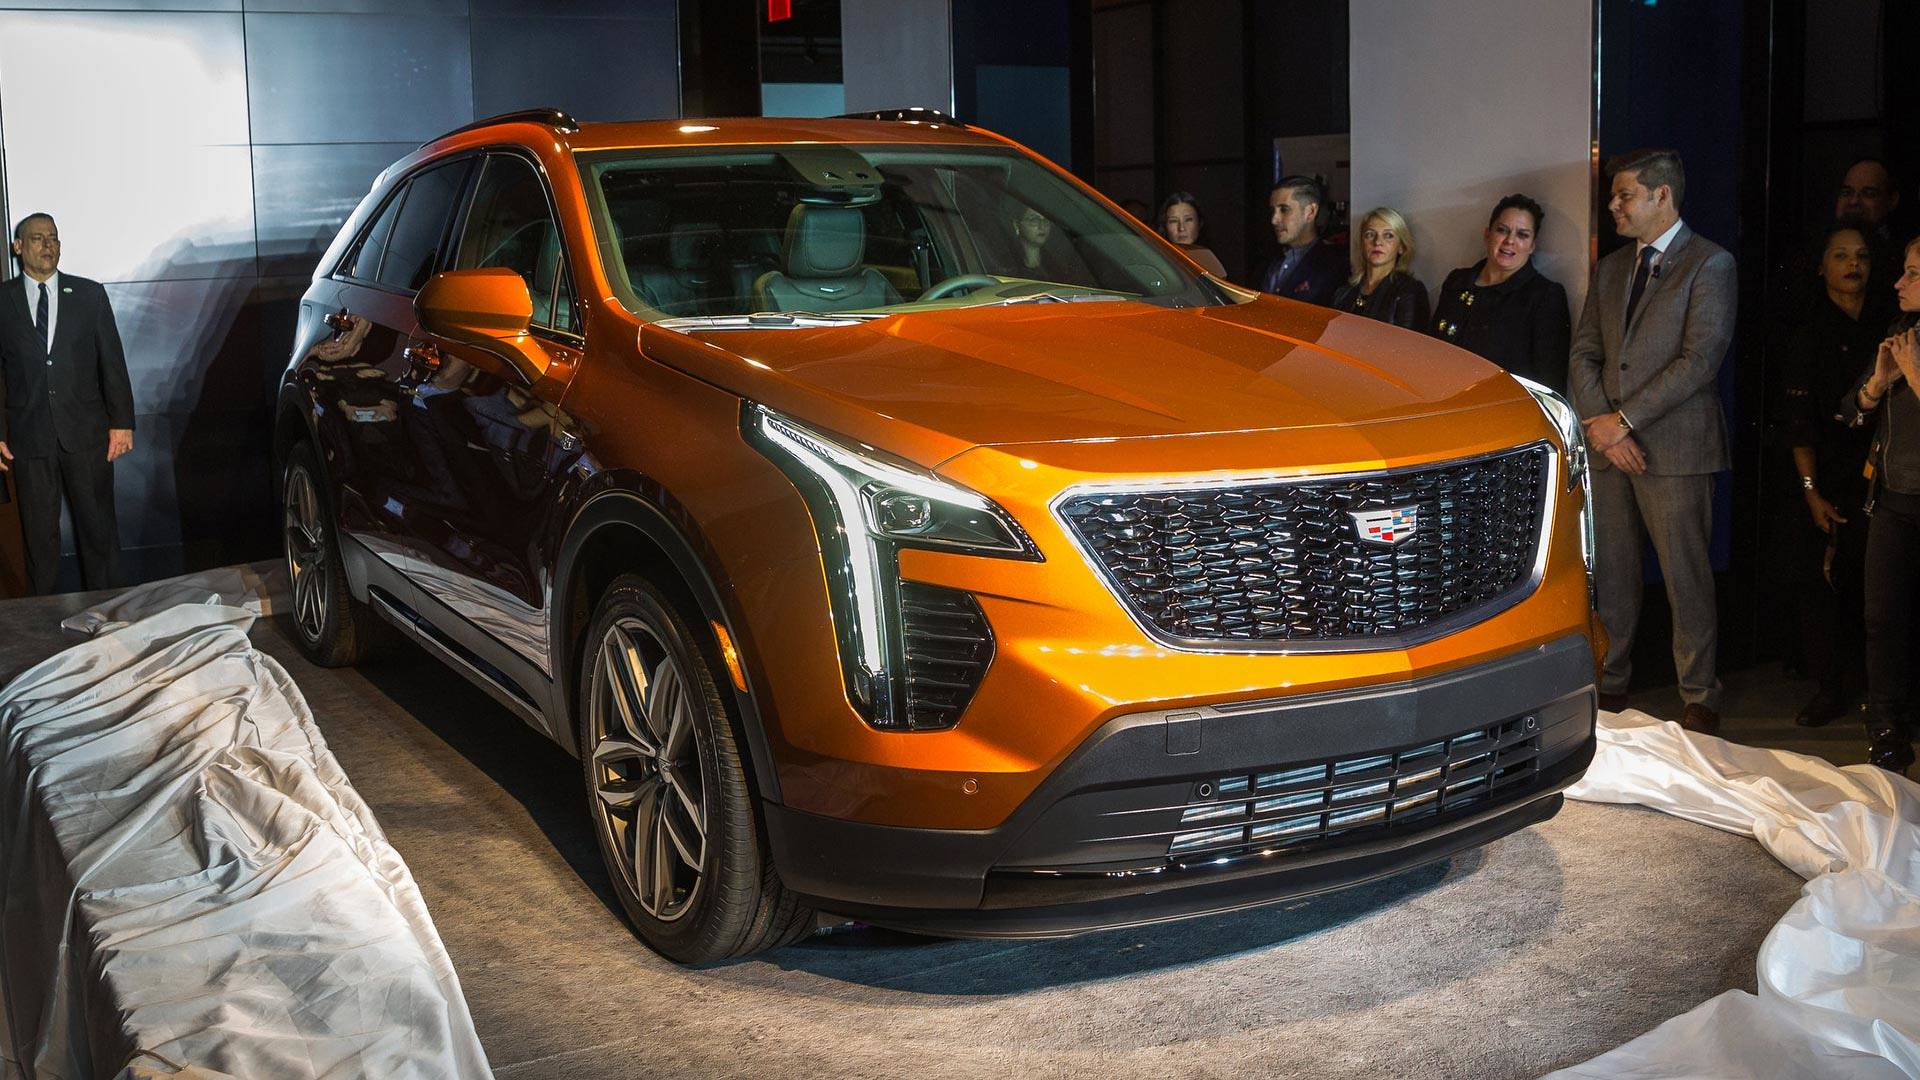 New Cadillac Suv 2019 2019 Cadillac XT4 Is A Smaller, More Affordable Luxury SUV